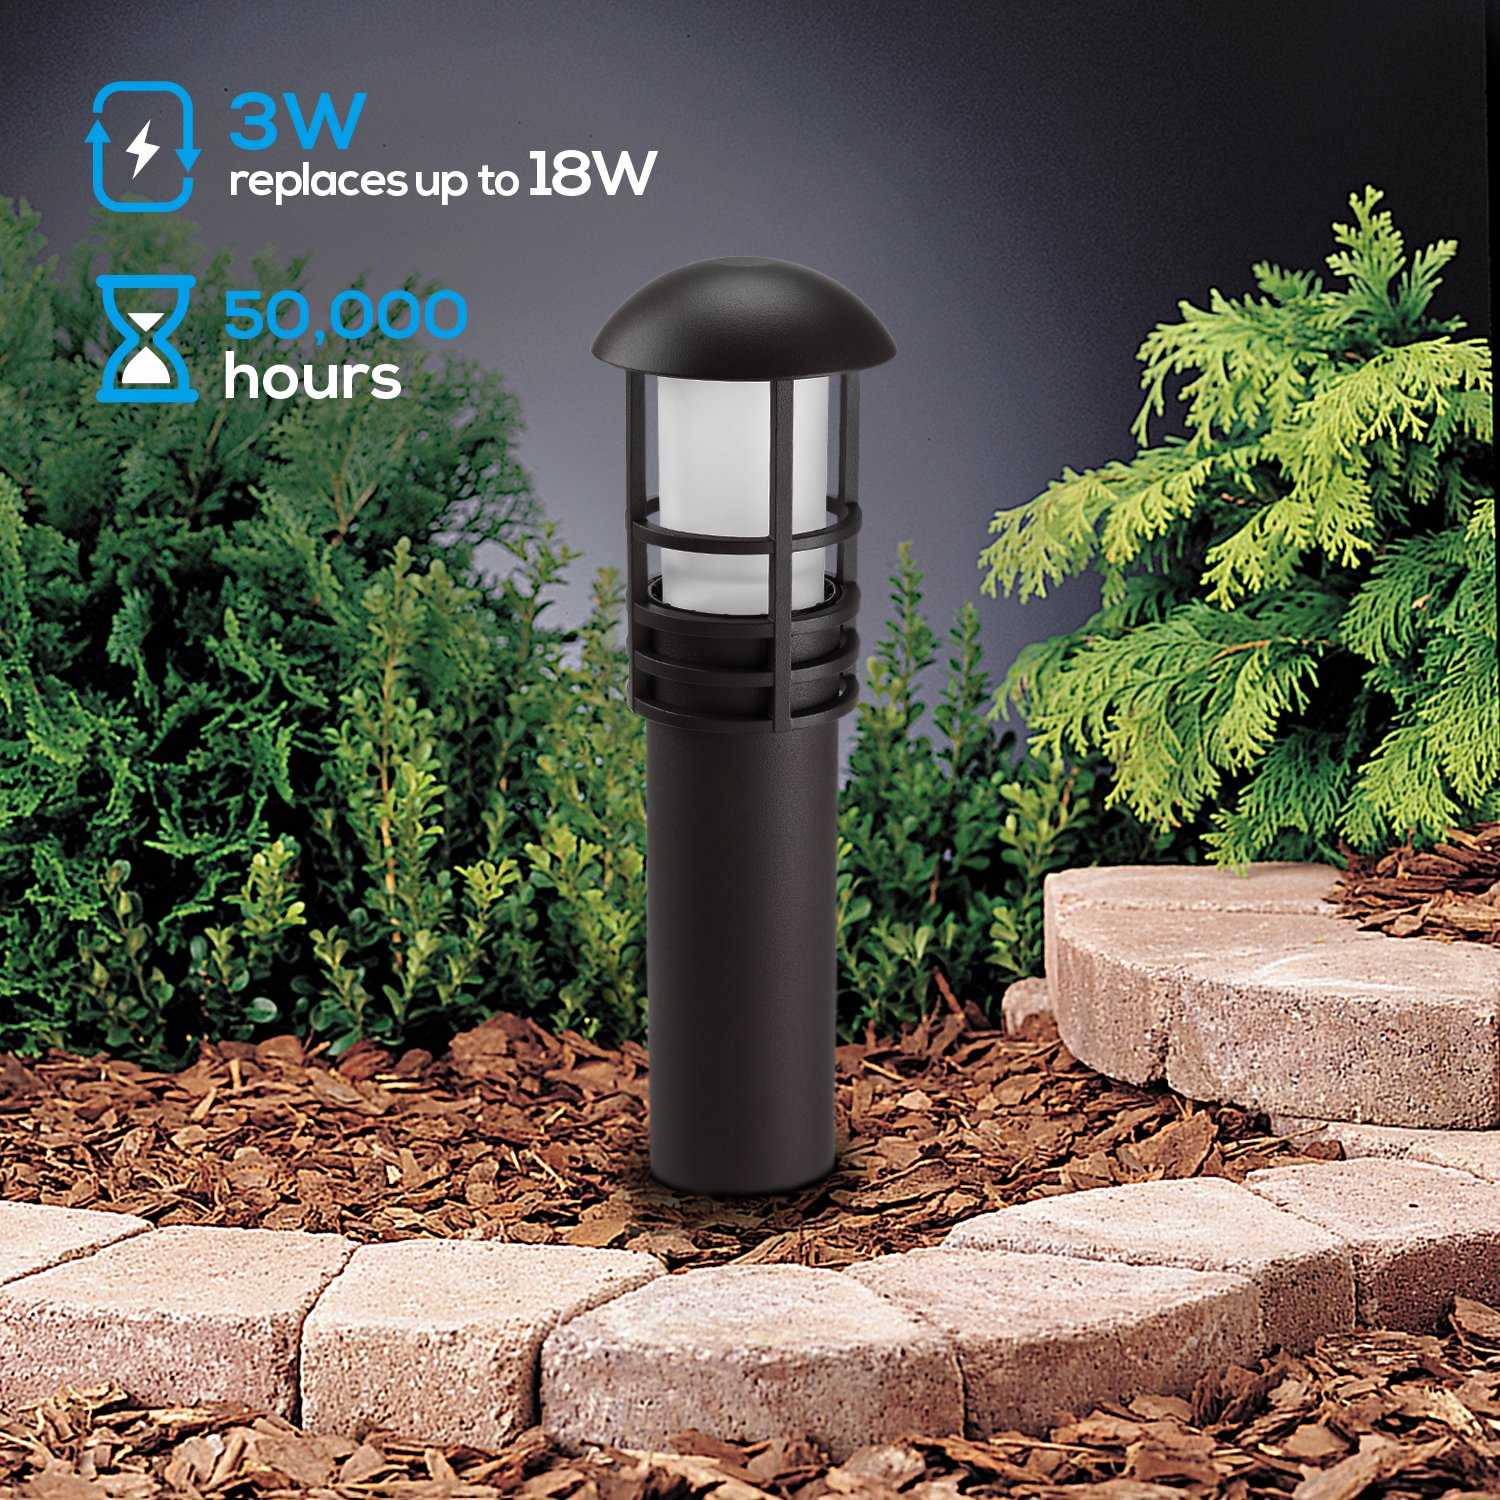 LEONLITE 3W LED Landscape Light, 18W Eqv, 12V Low Voltage, Waterproof, Aluminum Housing with Ground Stake, ETL Listed Outdoor Pathway Garden Yard Patio Lamp, 5000K Daylight, Pack of 12 by LEONLITE (Image #2)